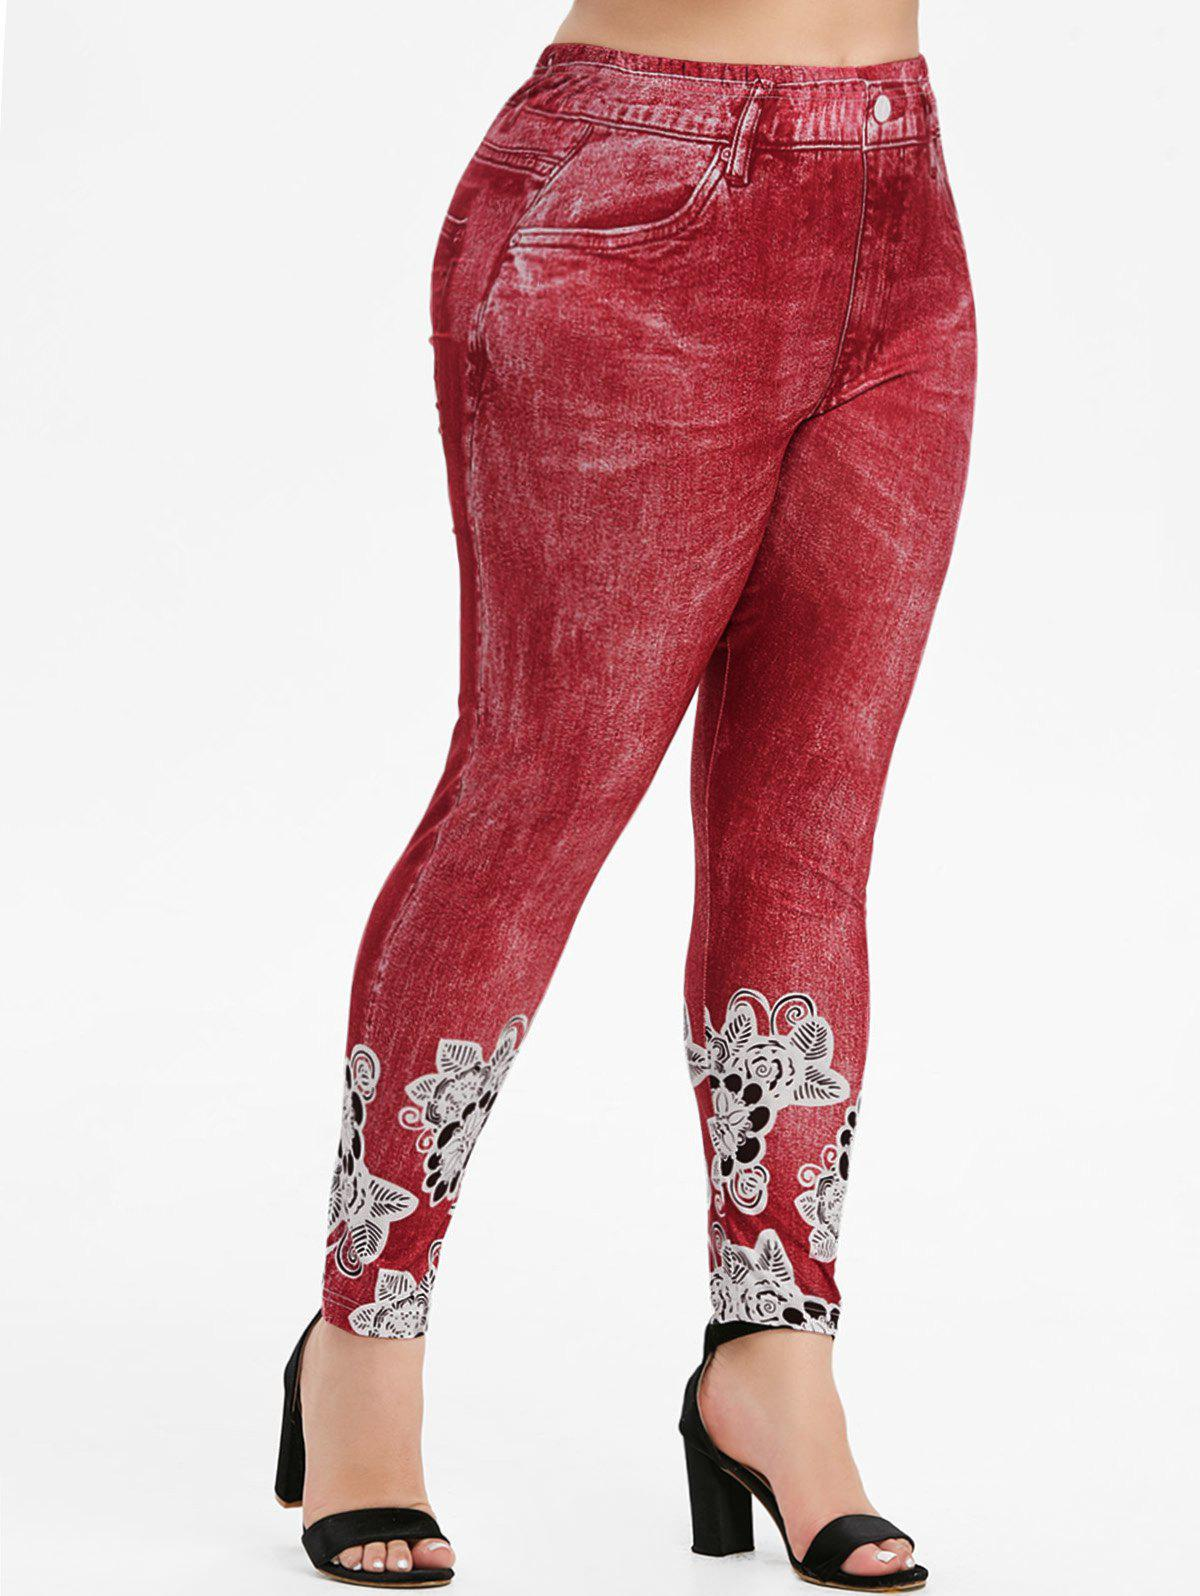 Floral 3D Printed High Waisted Pull On Plus Size Jeggings - RED 5X